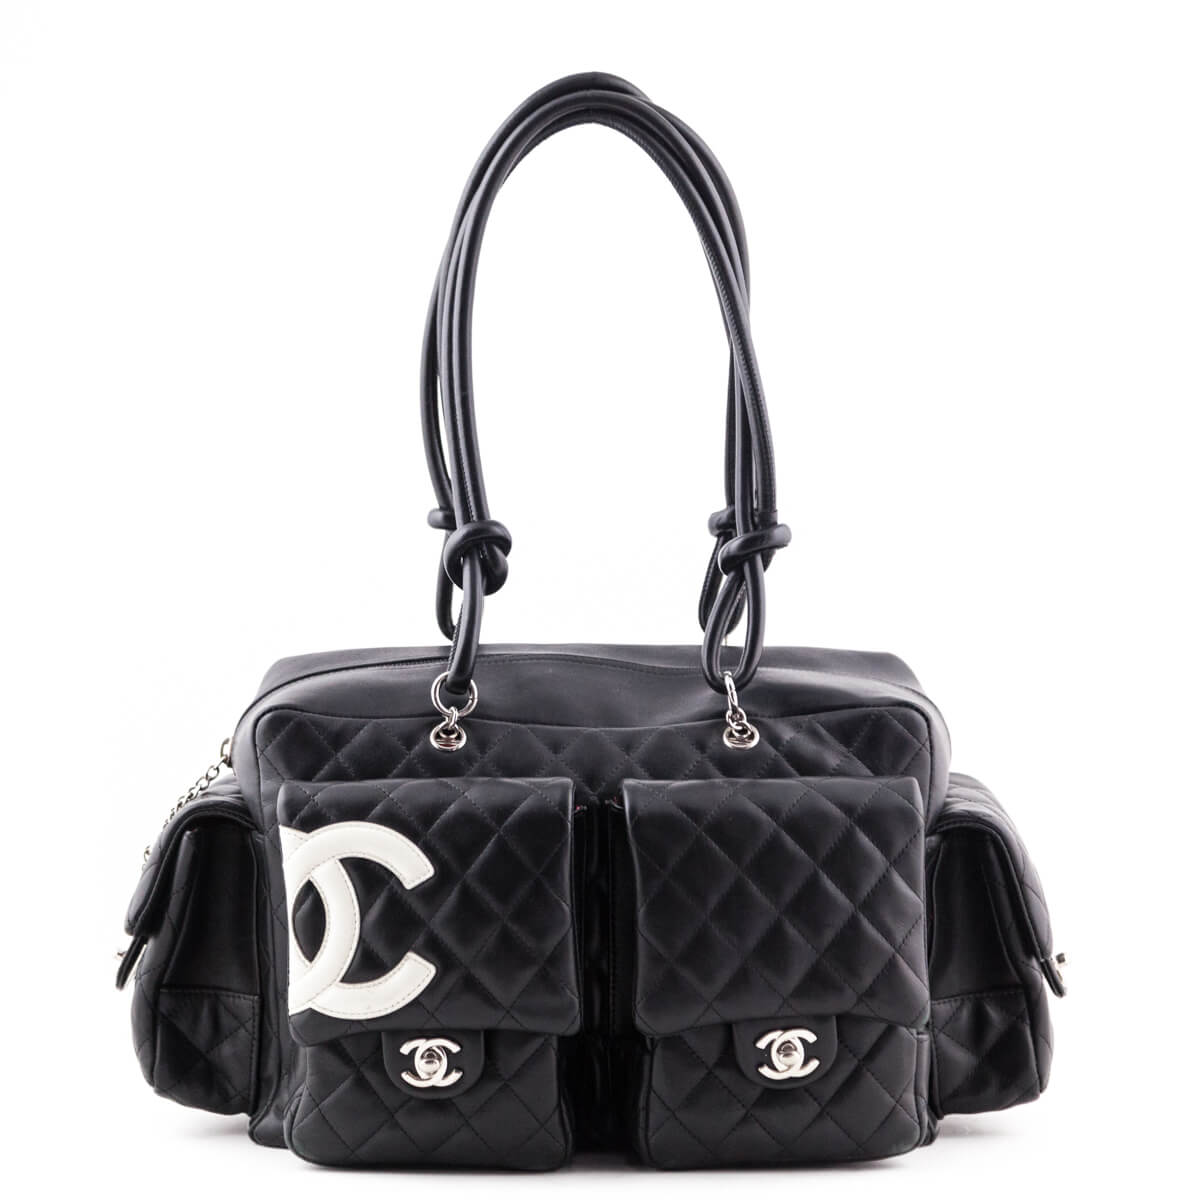 b864b0380ed6 Chanel Black Lambskin Quilted Cambon Pocket Tote - LOVE that BAG - Preowned  Authentic Designer Handbags ...